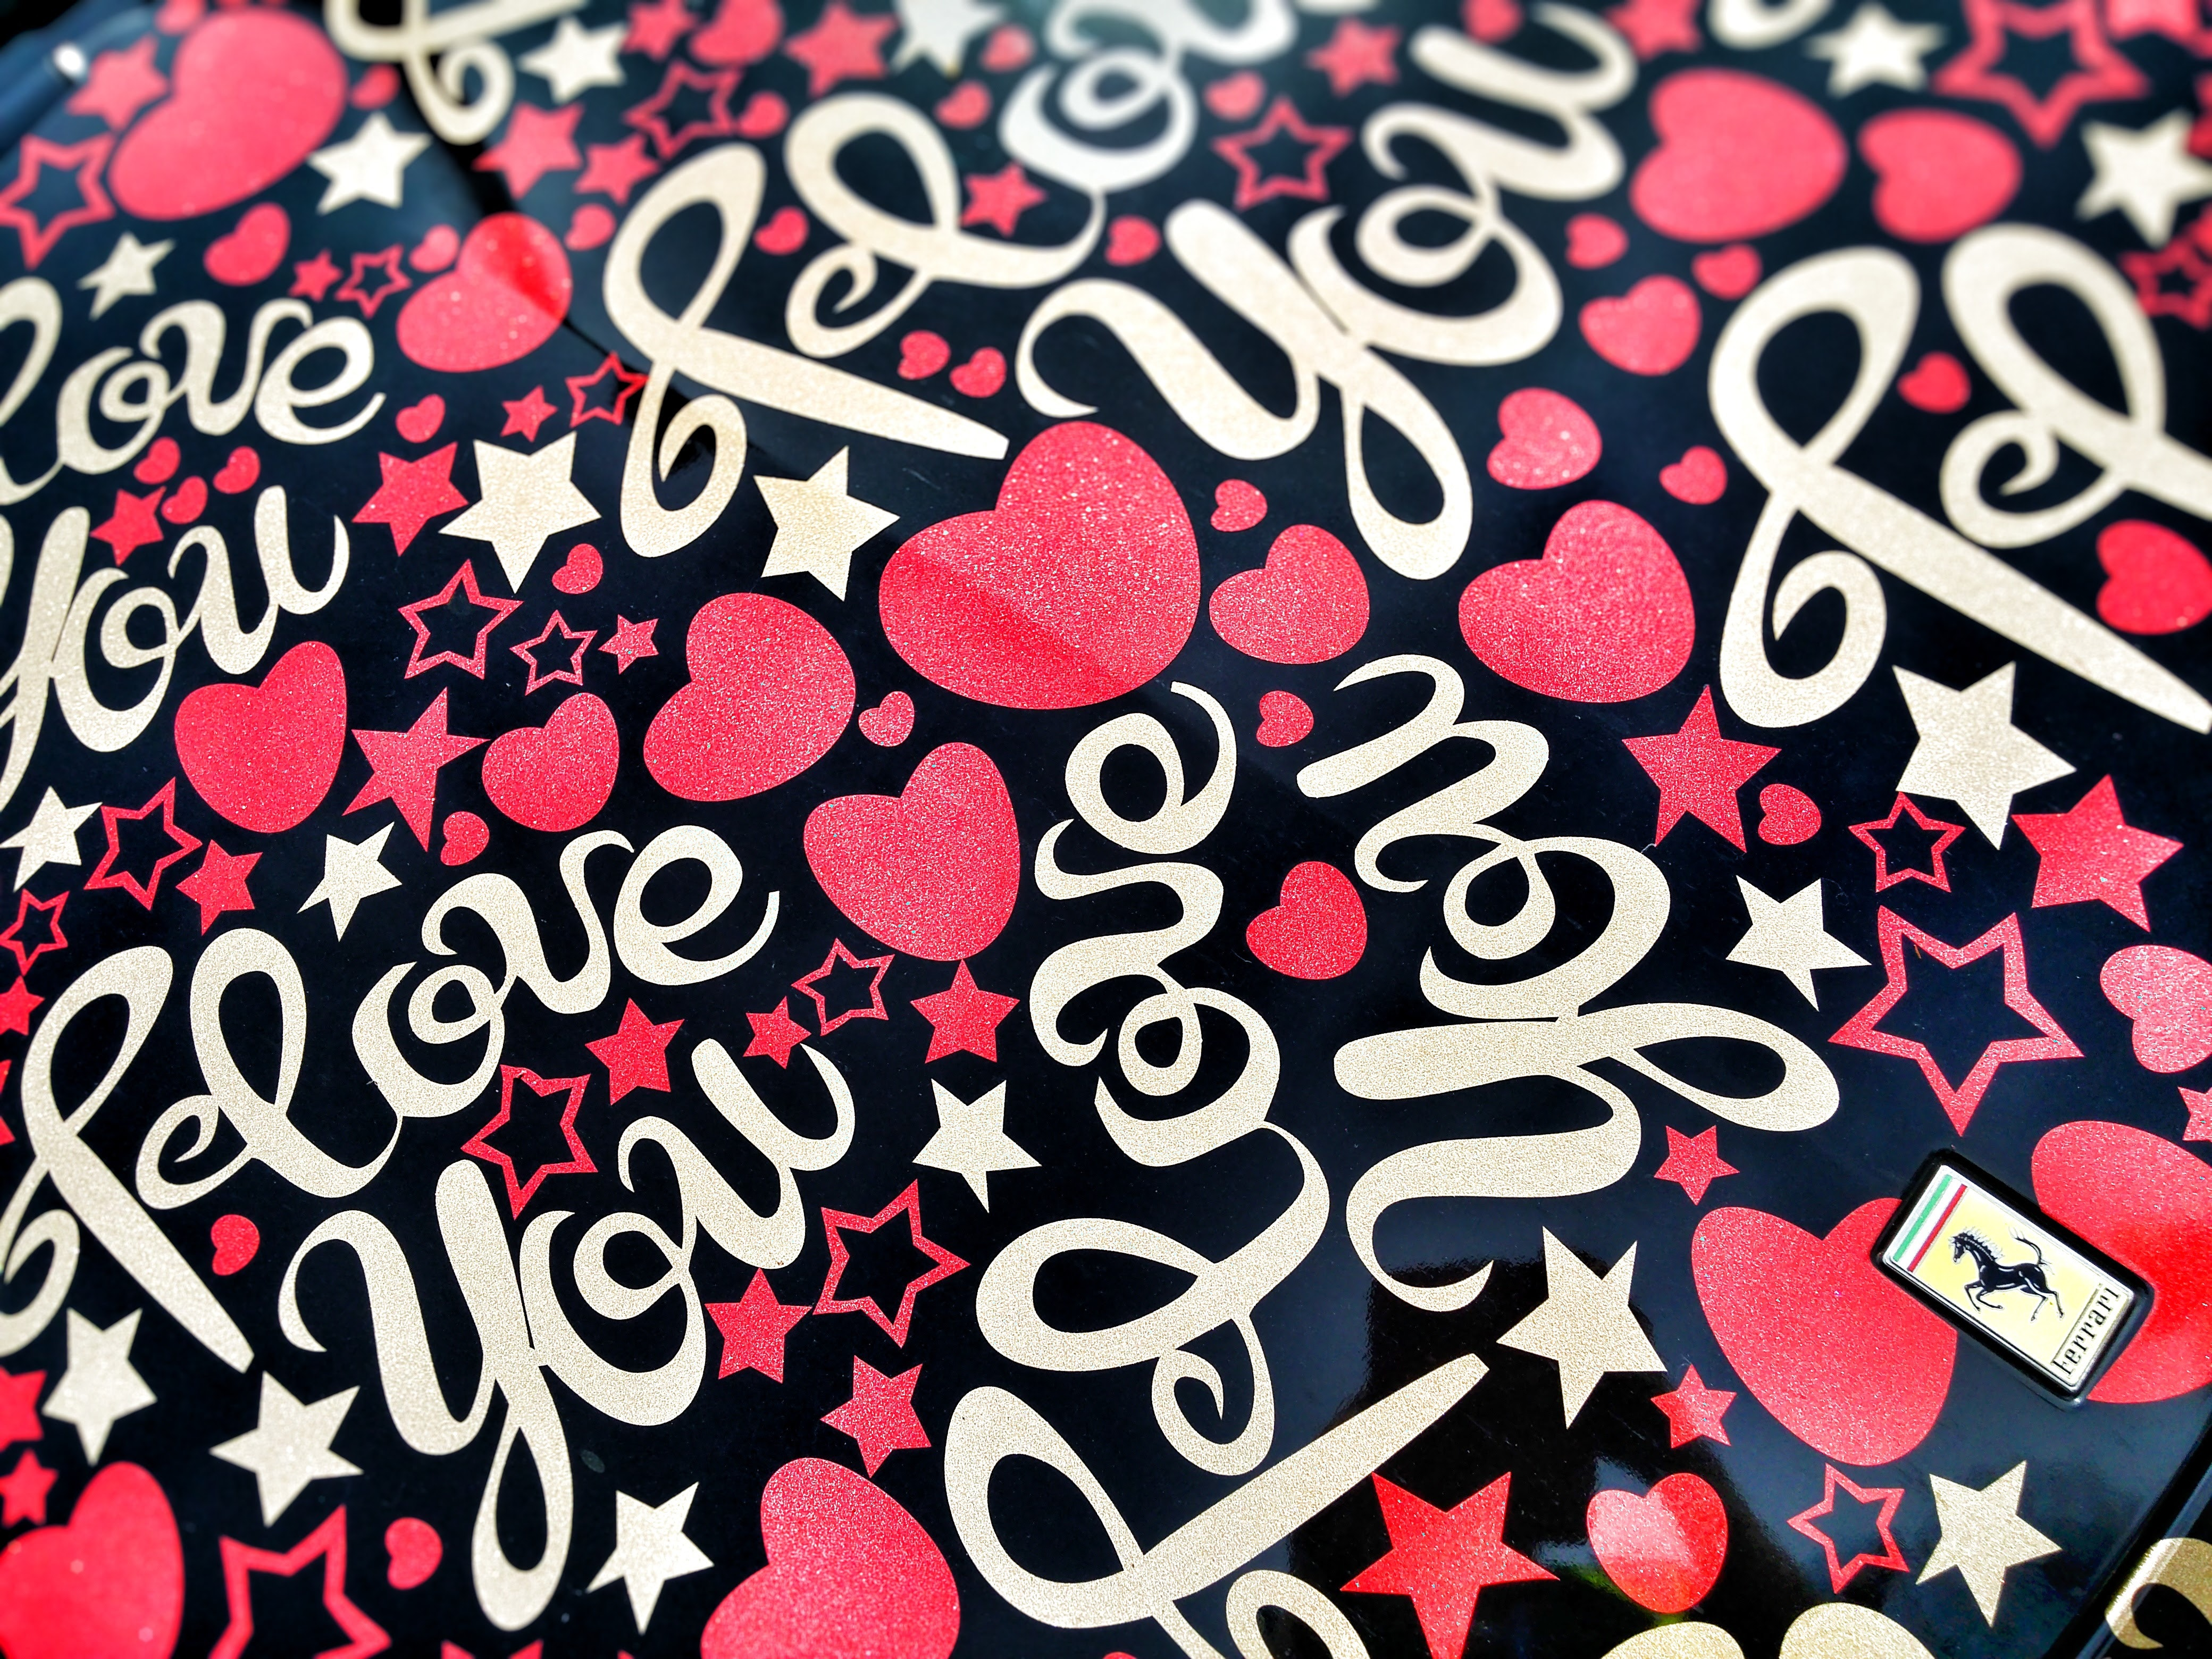 Black and multicolored i love you heart printed textile photo